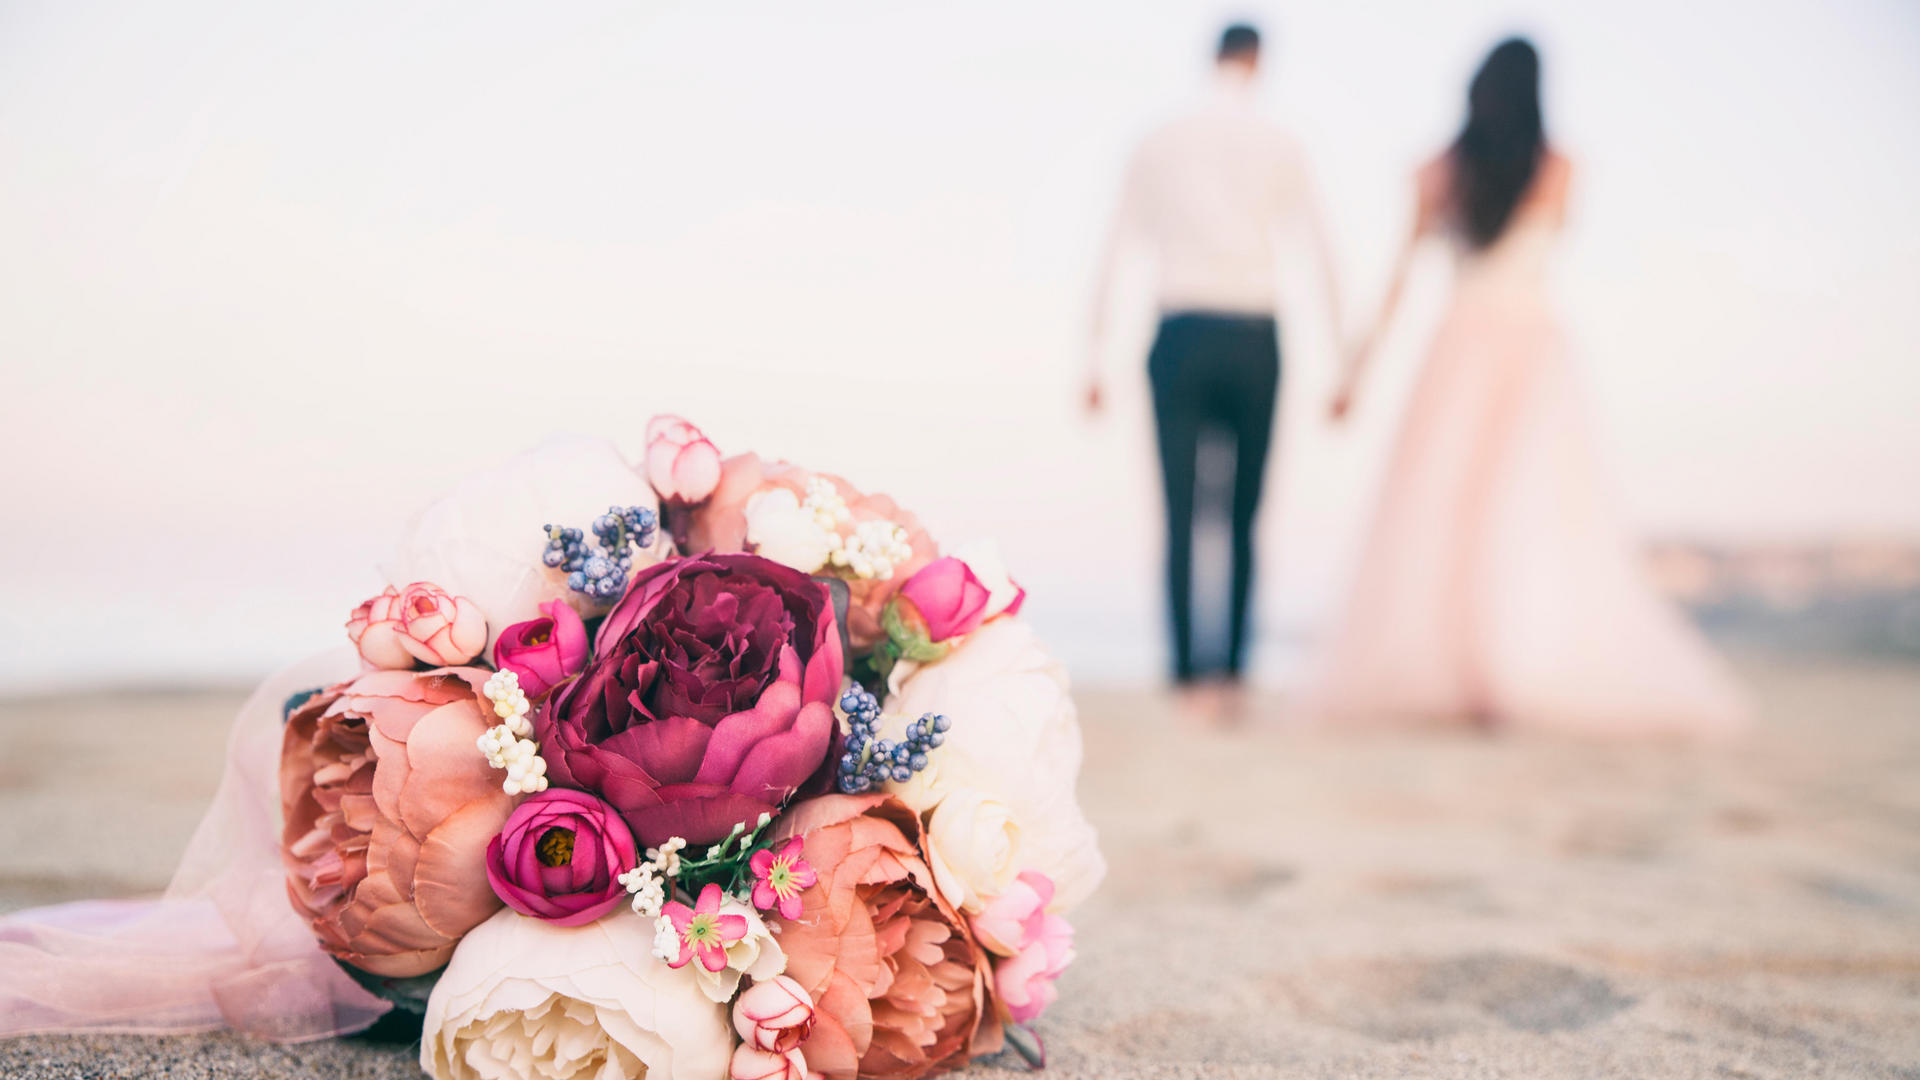 couple walking hand in hand on beach with flower boquet laying on sand